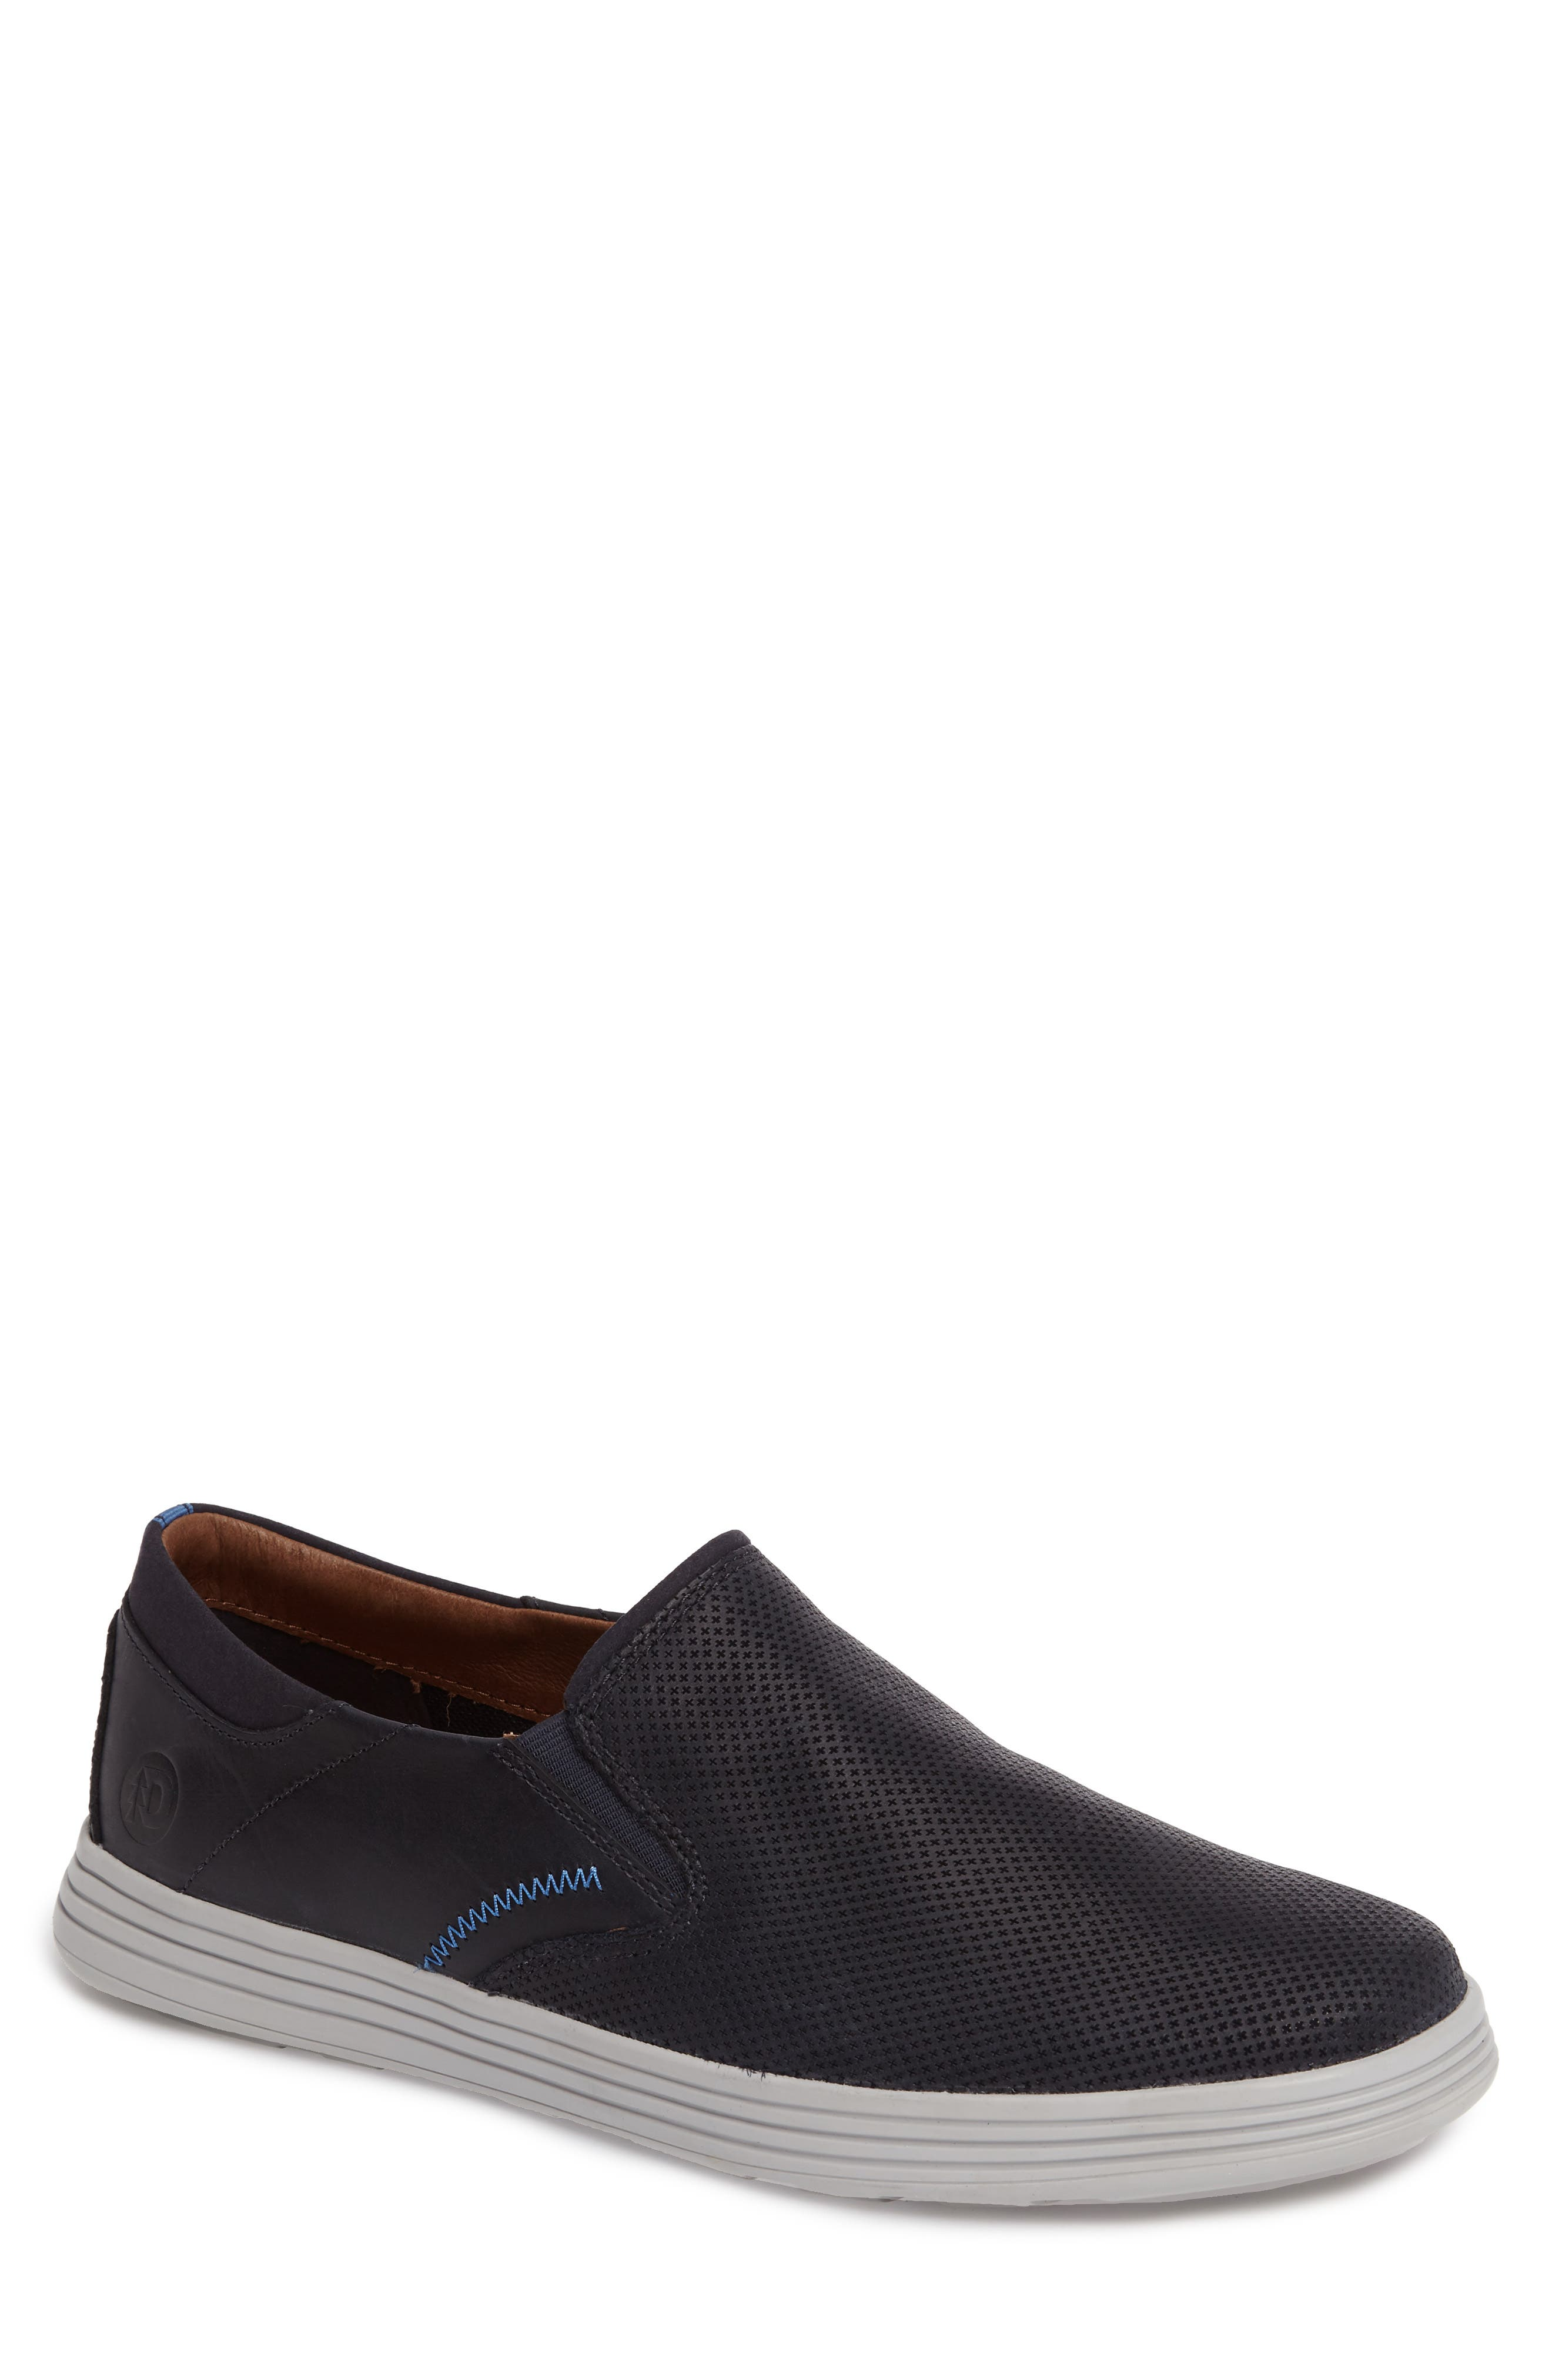 colchester men ★ dunham colchester slip-on (men) @ compare price mens sneakers amp athletic shoes, enjoy free shipping on all orders [dunham colchester slip-on (men)] shop online for shoes, clothing, makeup, dresses and more from top brands.